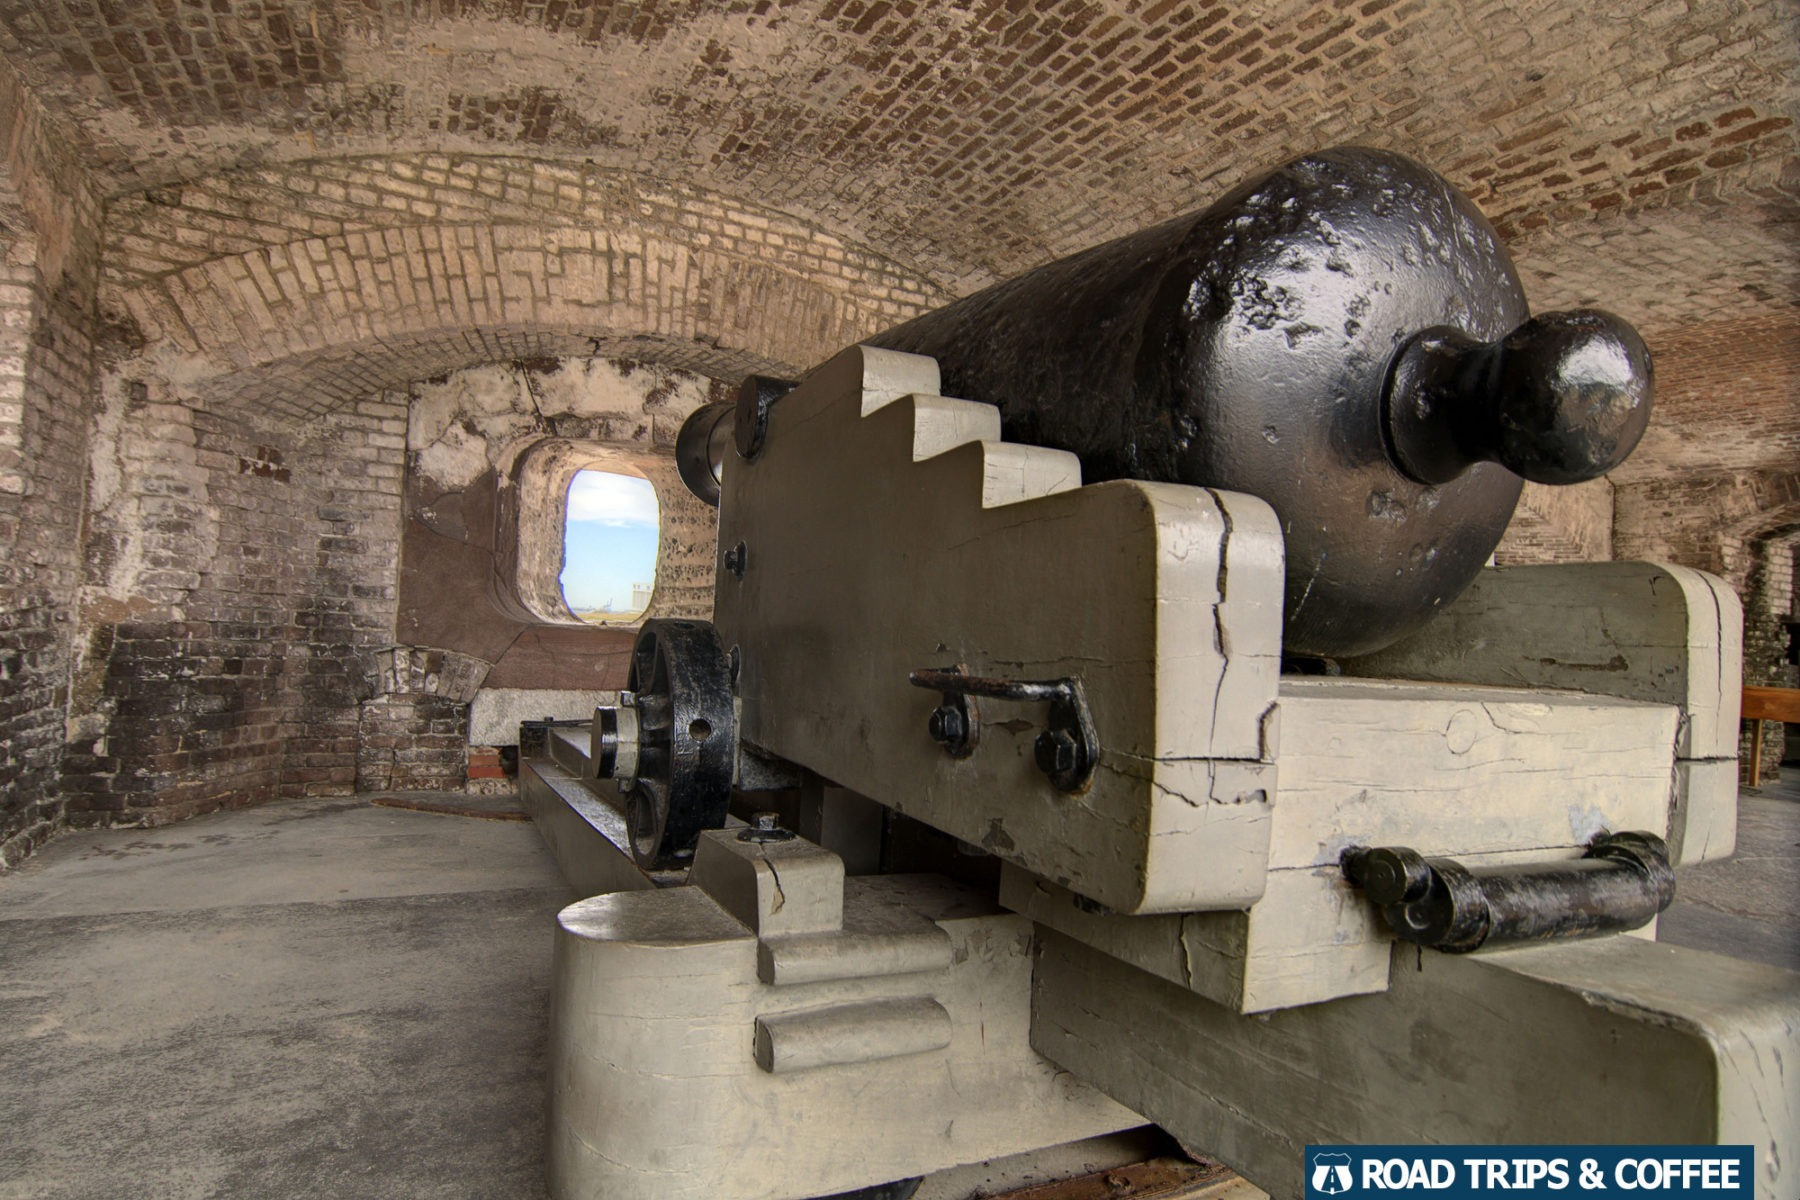 A massive cannon points through a small opening overlooking the harbor at Fort Sumter and Fort Moultrie National Historic Site in Charleston, South Carolina